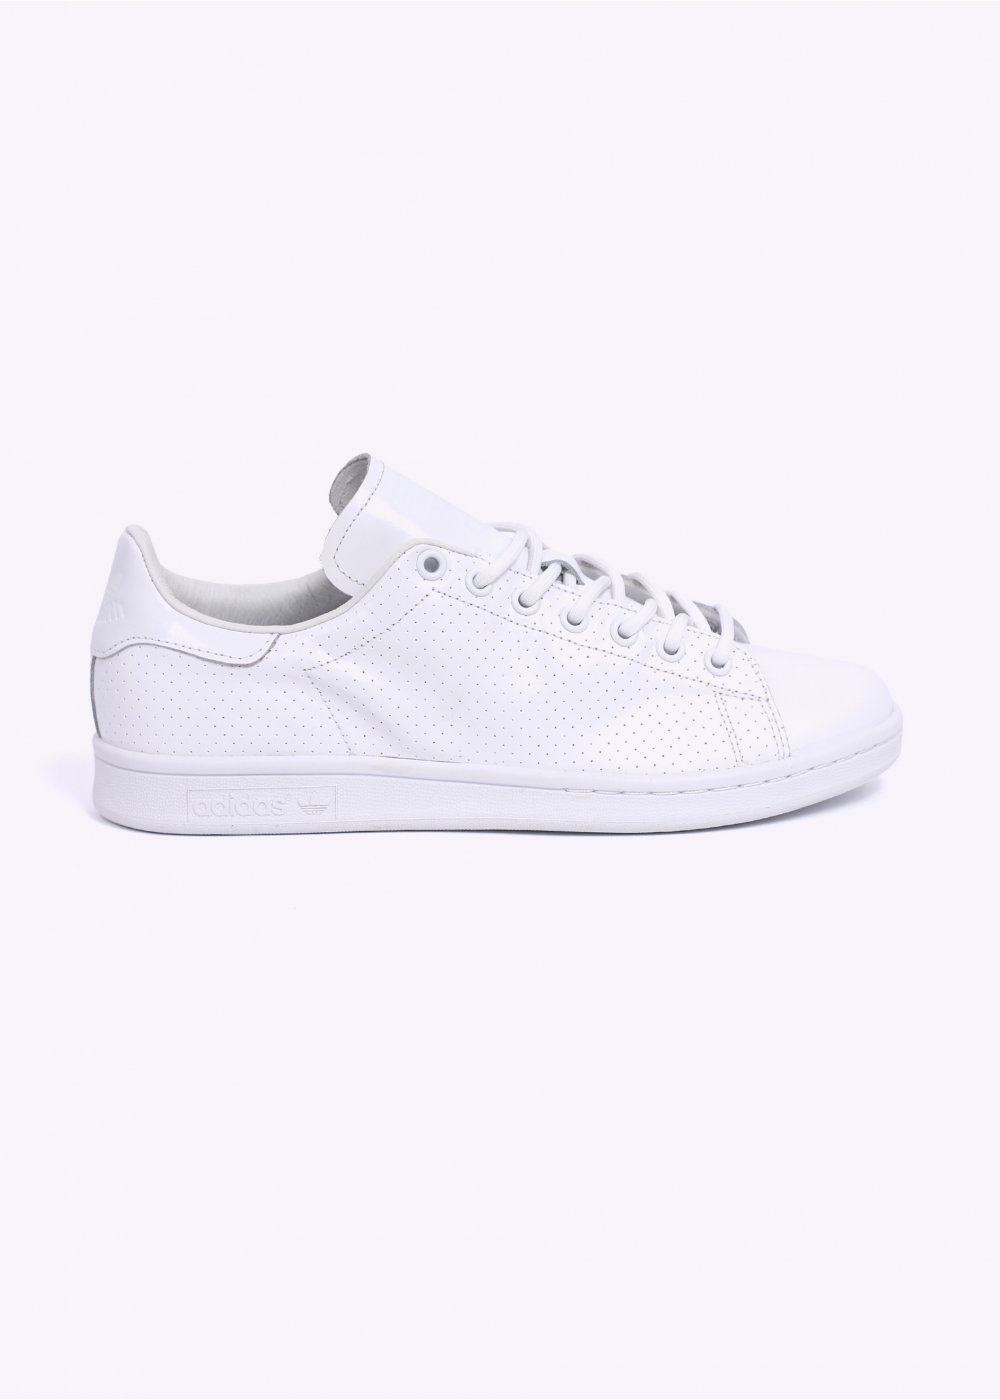 adidas Originals Stan Smith Perforated Leather Trainers - All White 9664b63be